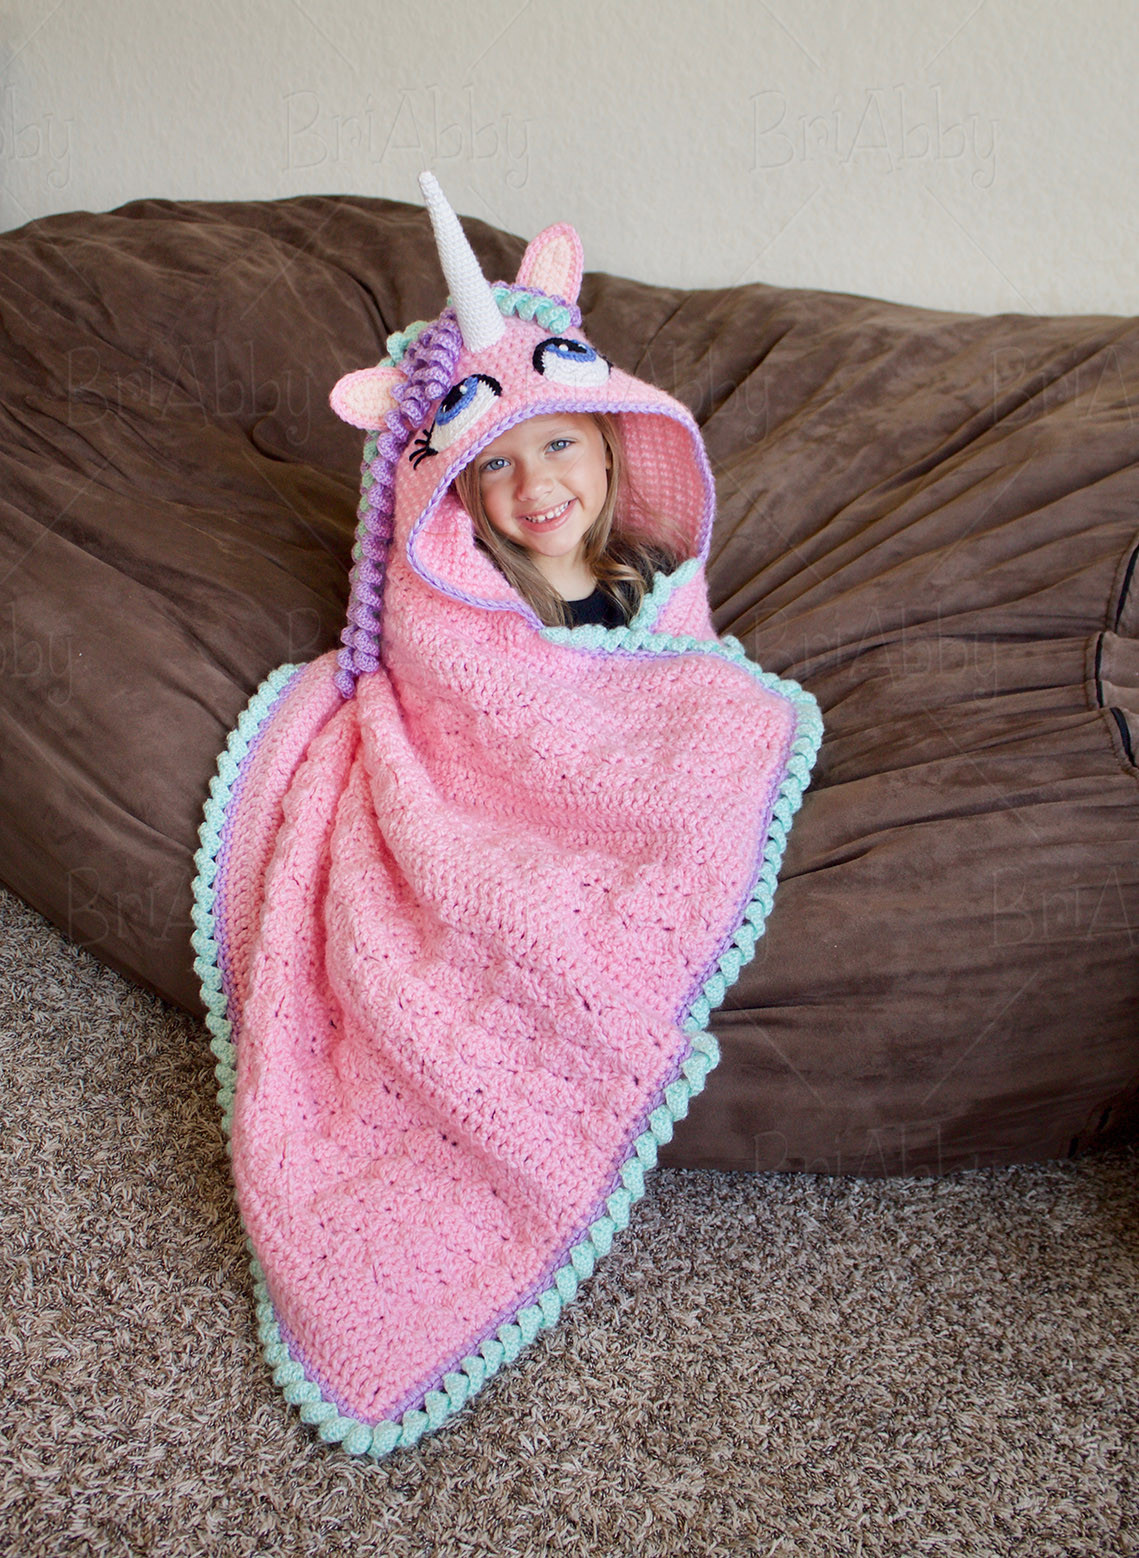 Luxury Briabby Crochet Pattern Designs Crochet Unicorn Blanket Pattern Of Marvelous 48 Photos Crochet Unicorn Blanket Pattern